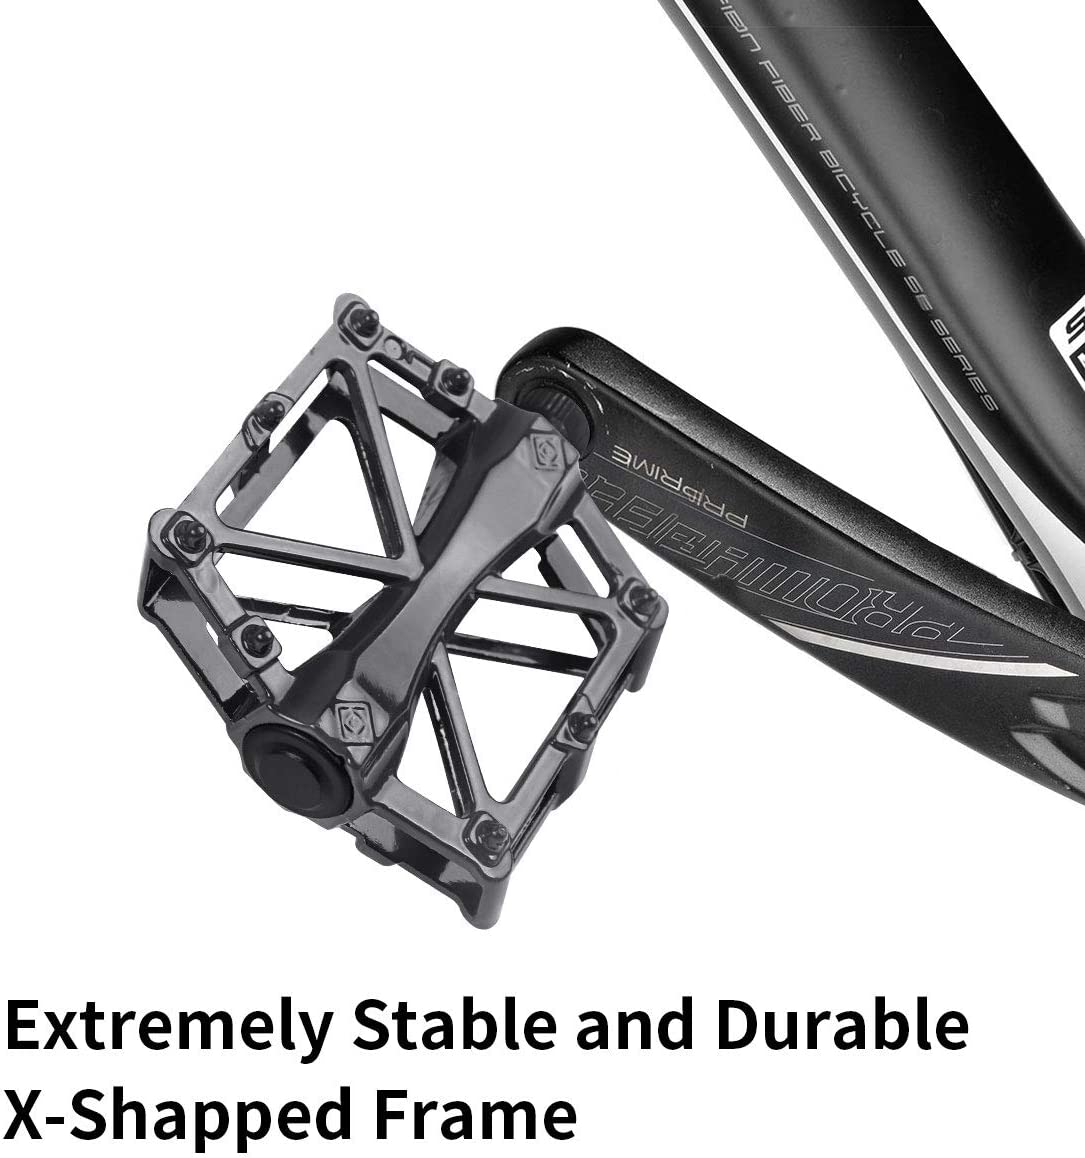 Mountain Bike Pedals Aluminum CNC Bearing Bicycle Pedals Lightweight Platform Pedals Road Bike Pedals with 16 Anti-skid Pins 9//16 Spindle Bike Pedal for BMX//MTB Bike Bike pedals